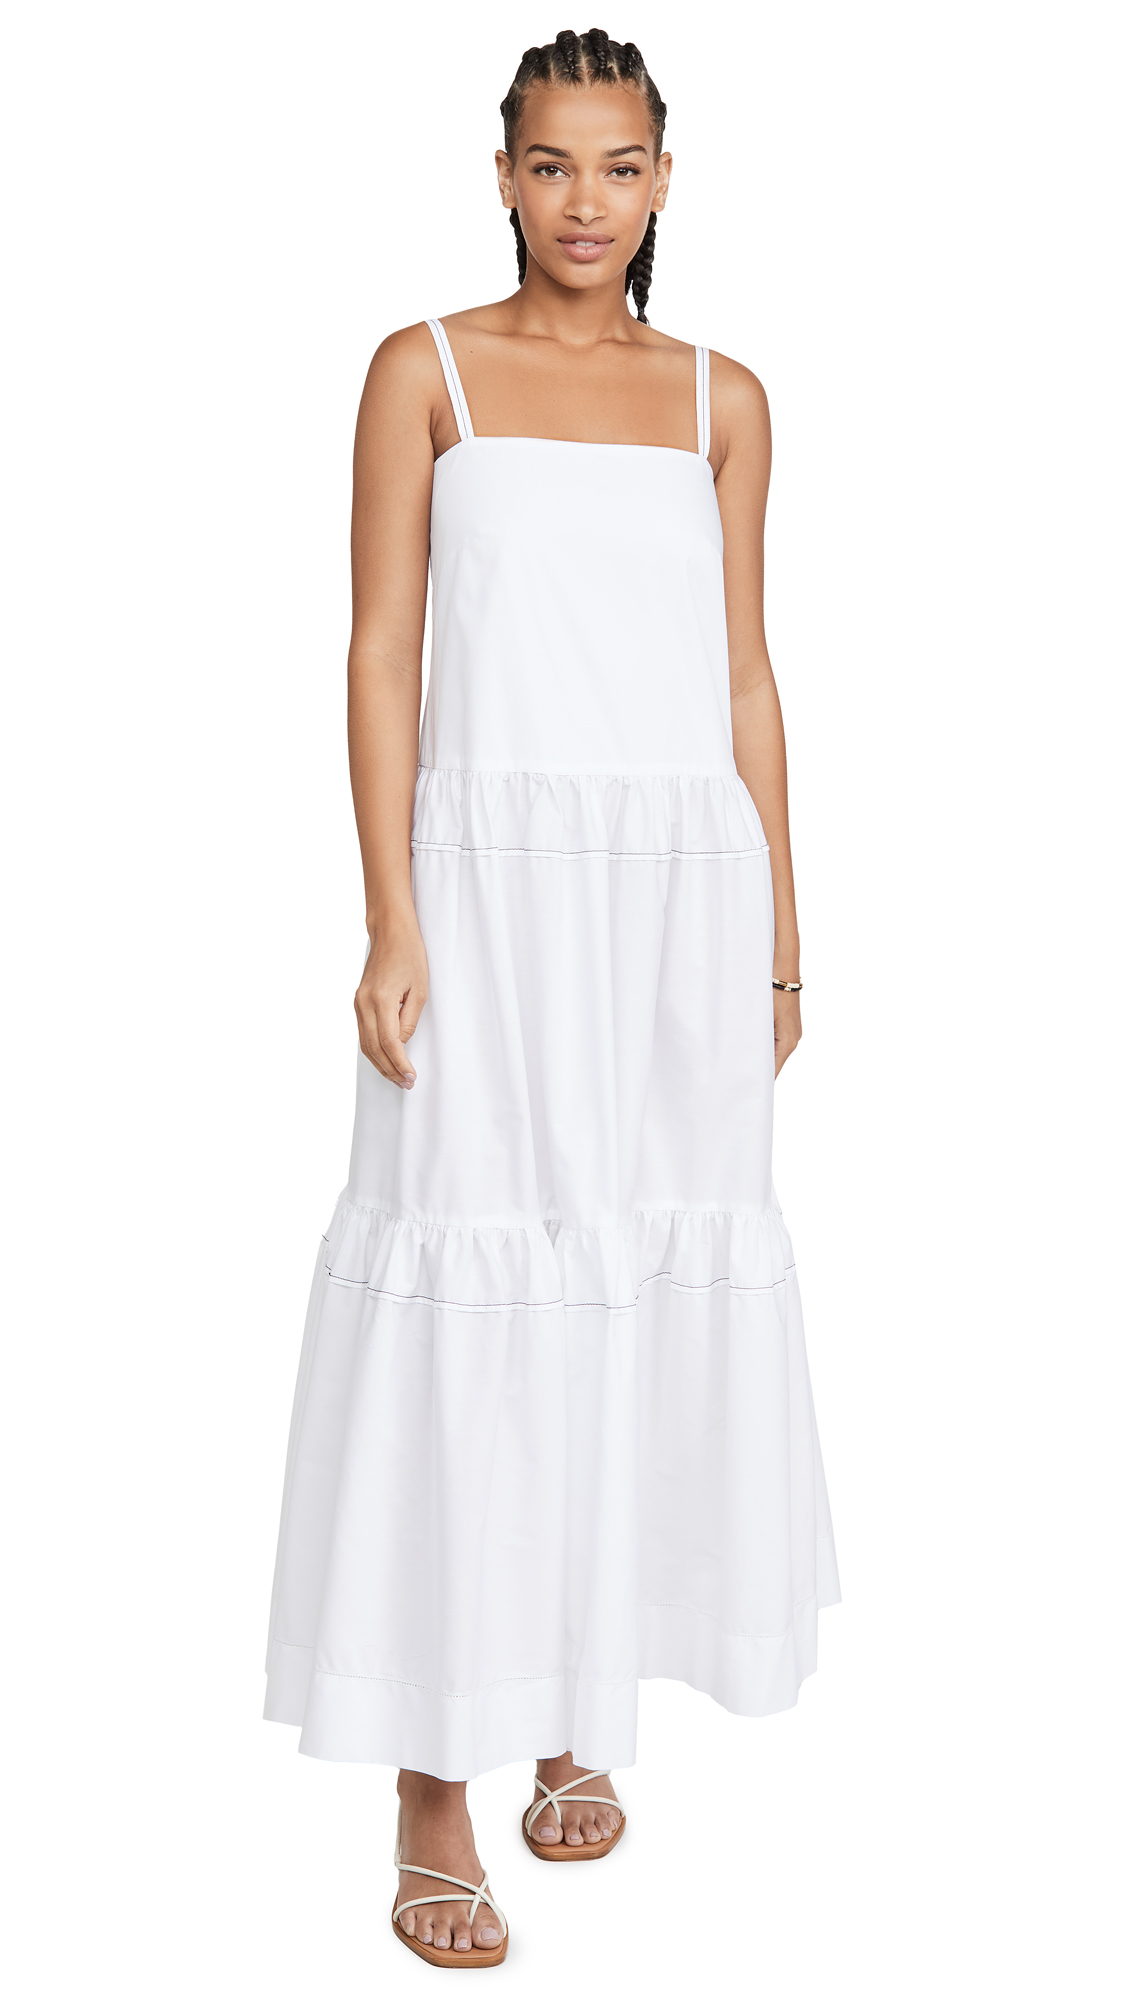 Rosetta Getty Tiered Ruffle Dress - 50% Off Sale